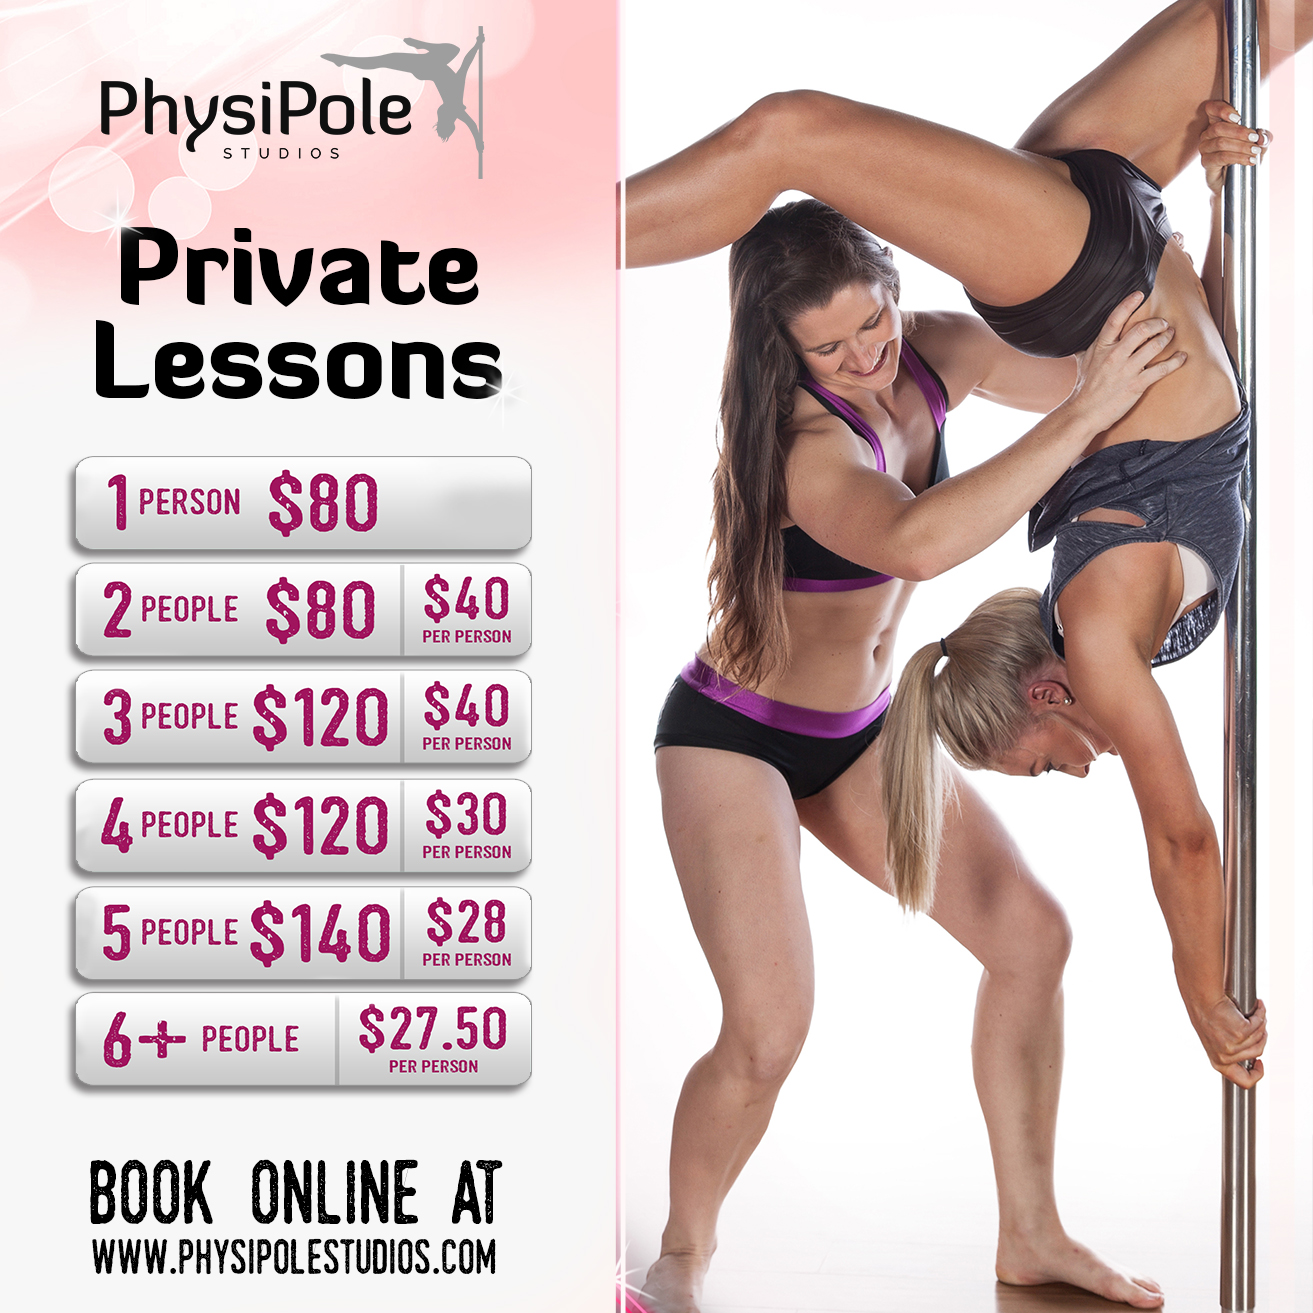 PhysiPole Private Lessons